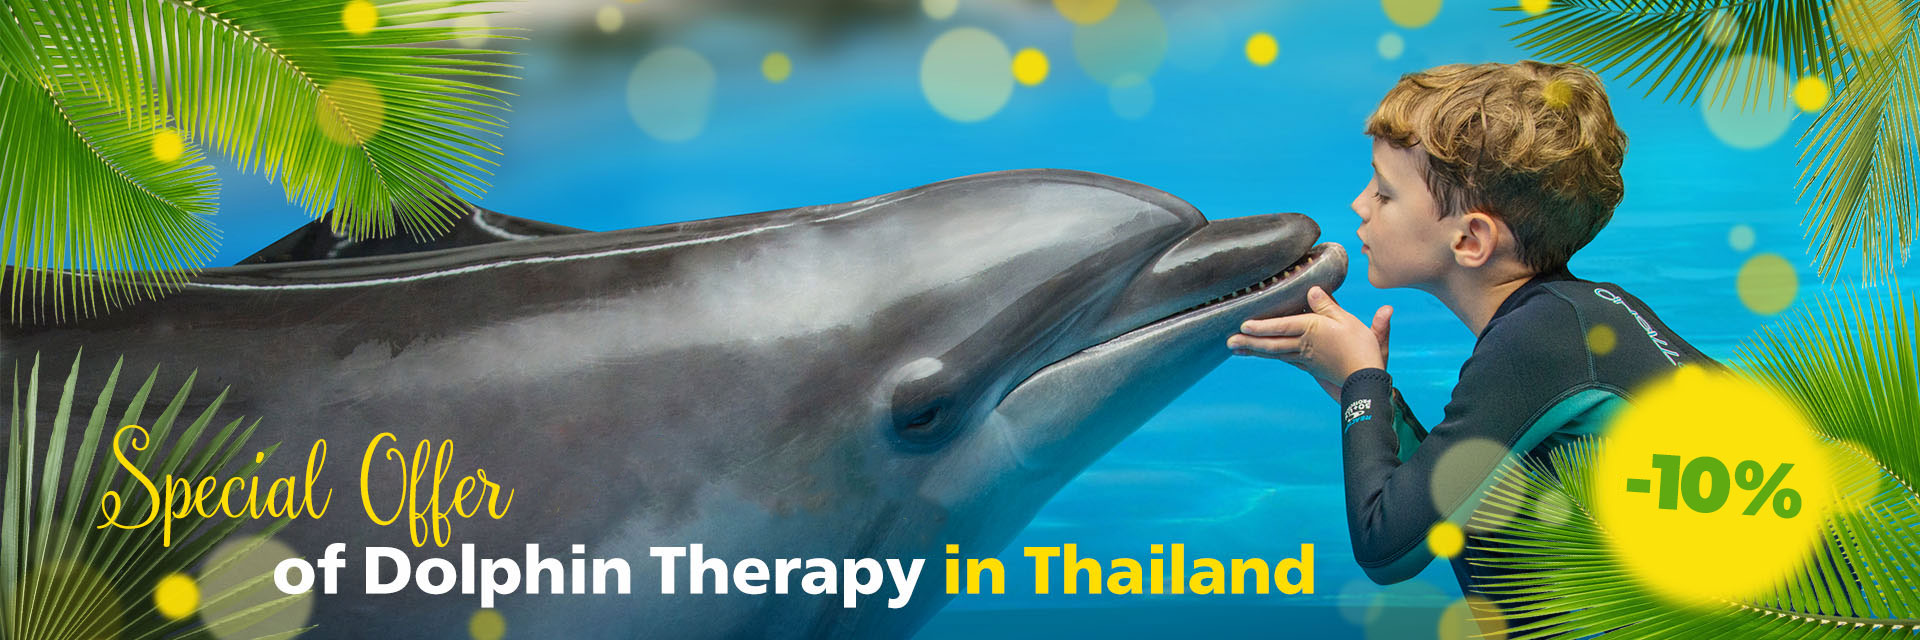 Special offer to the opening of Dolphin therapy in Thailand, photo